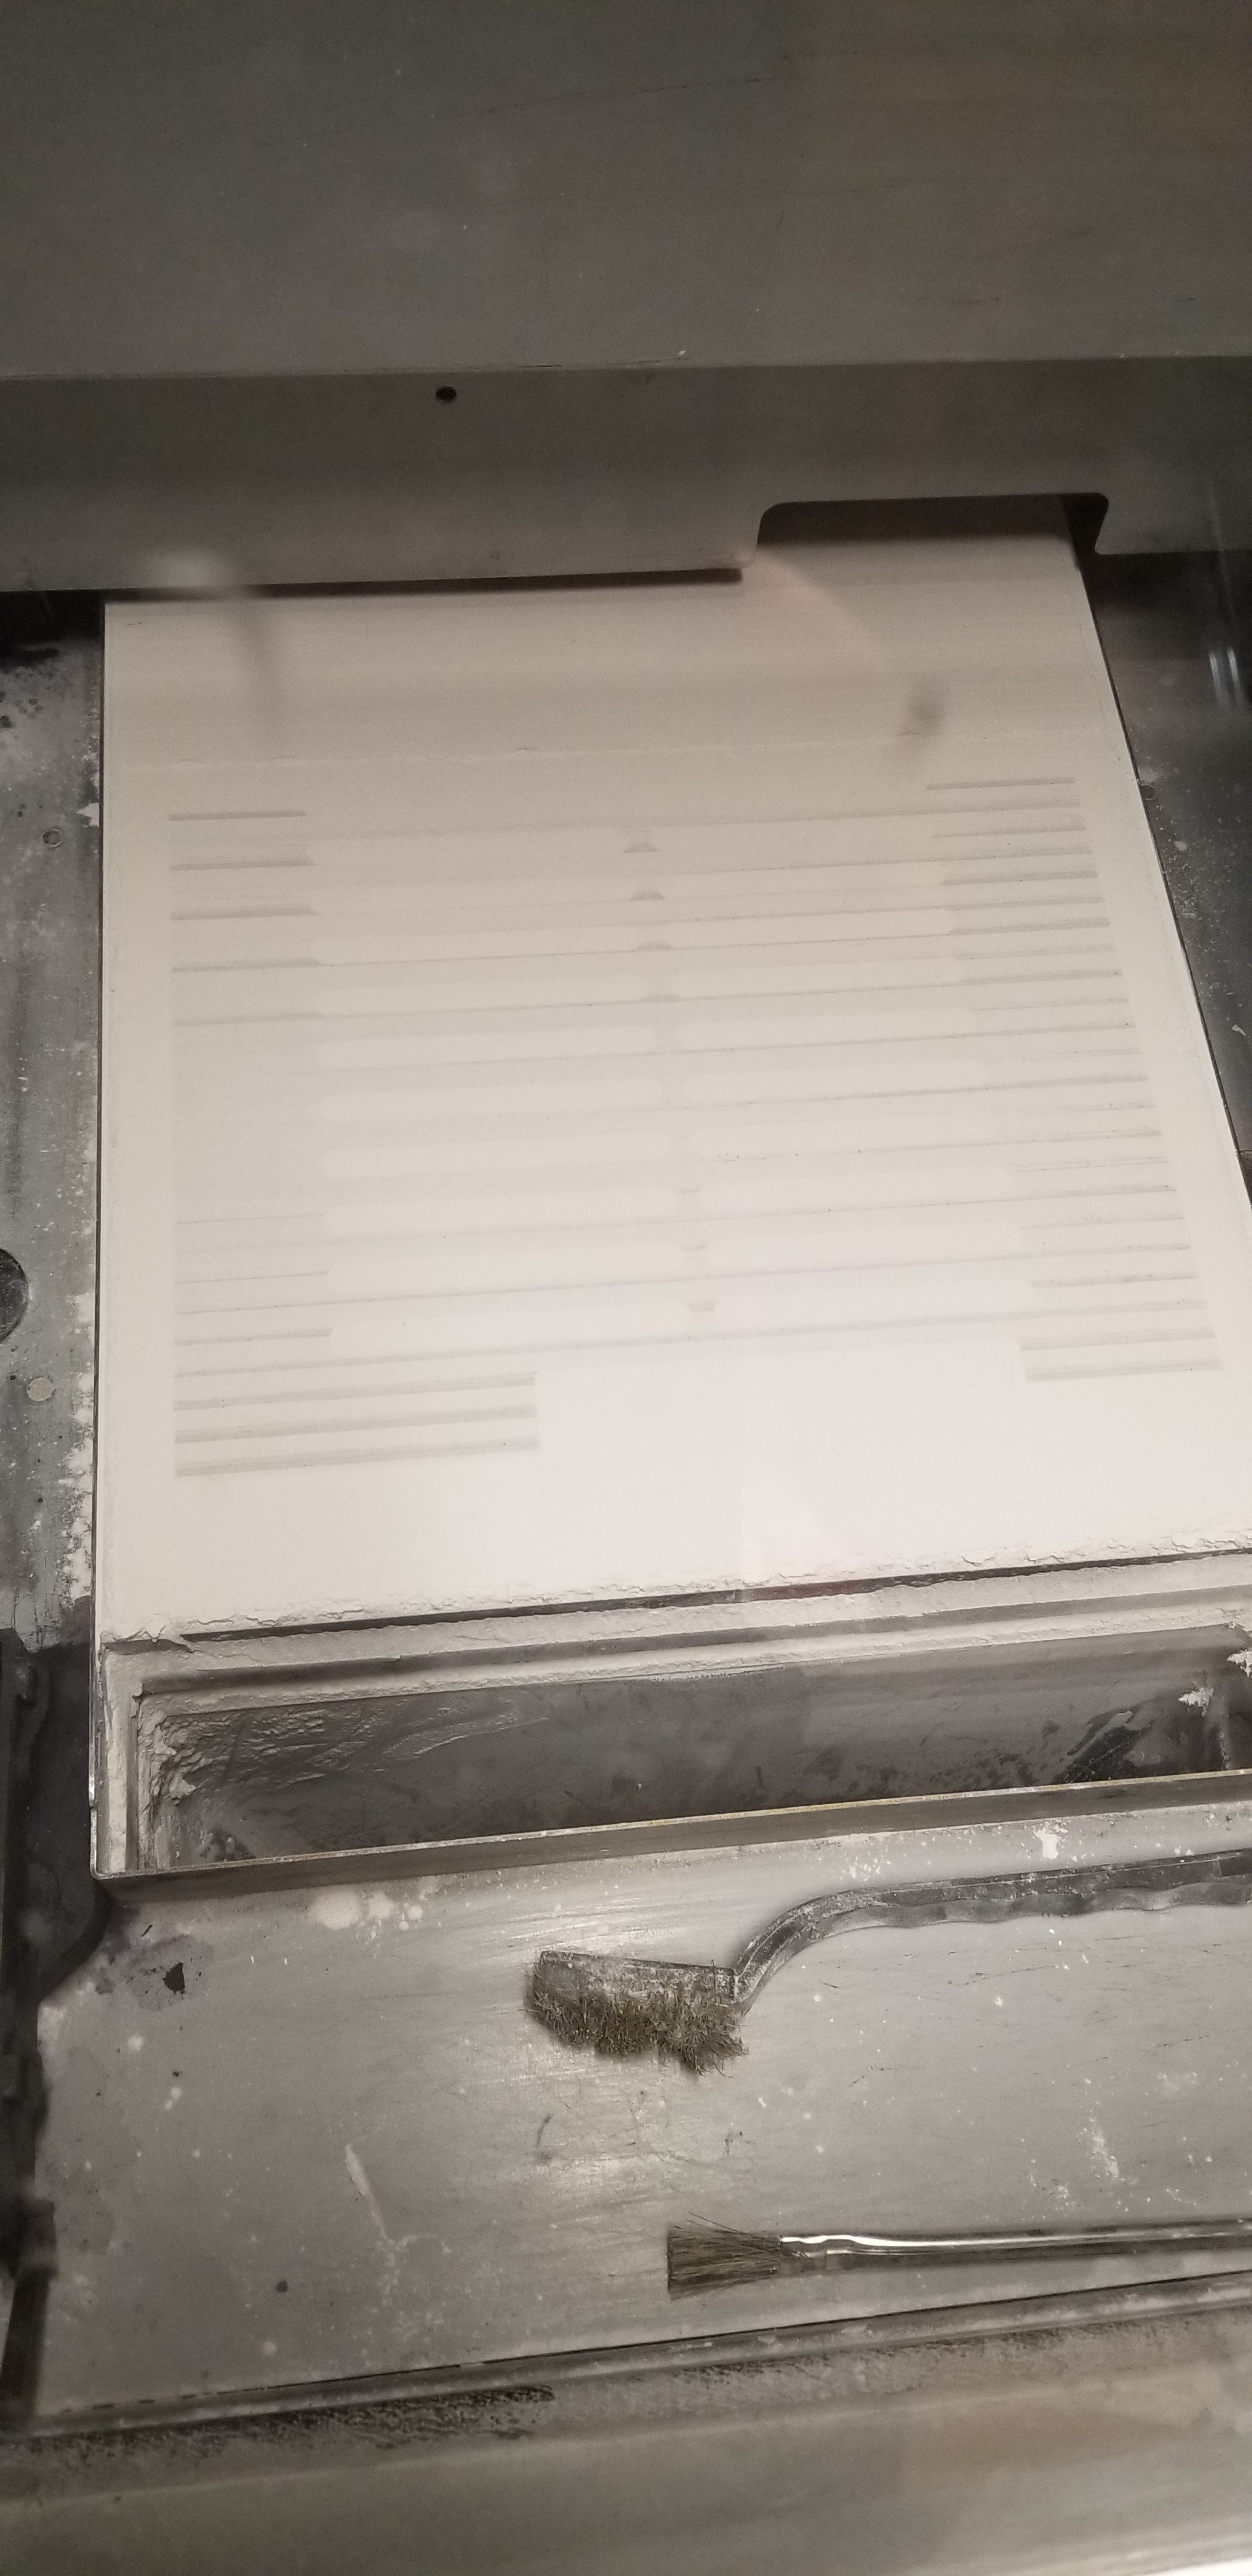 Zcorp 450 Print Head Clogging, Streaking, and Alignment Failure - 3D